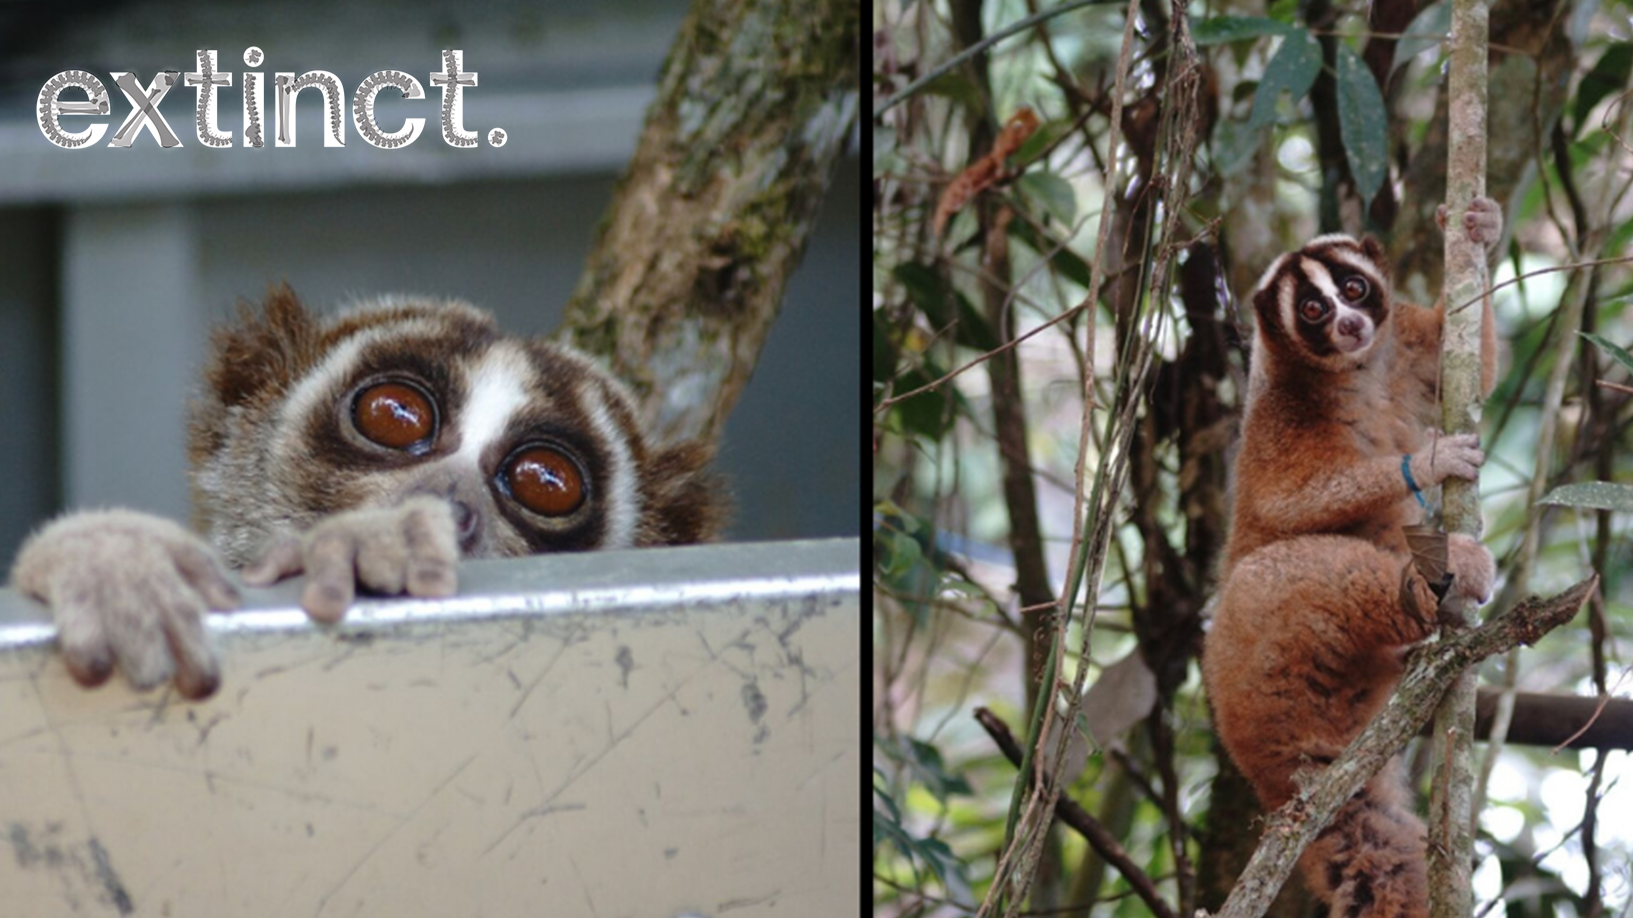 Amazing Moment 20 Slow Lorises Are Released Into The Wild For The First Time